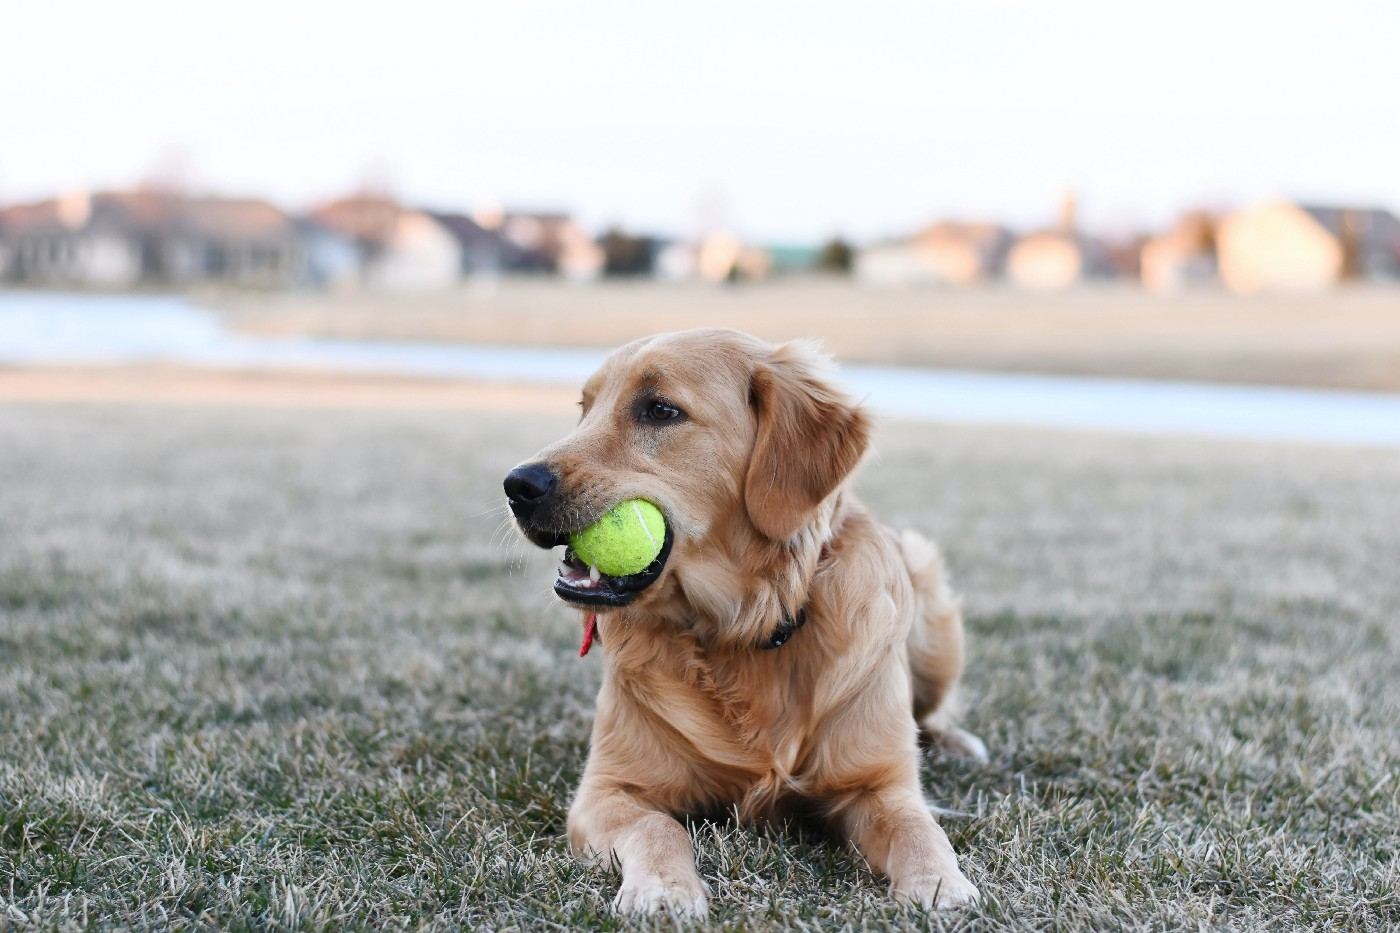 Fetch Photo by Julissa Helmuth from Pexels